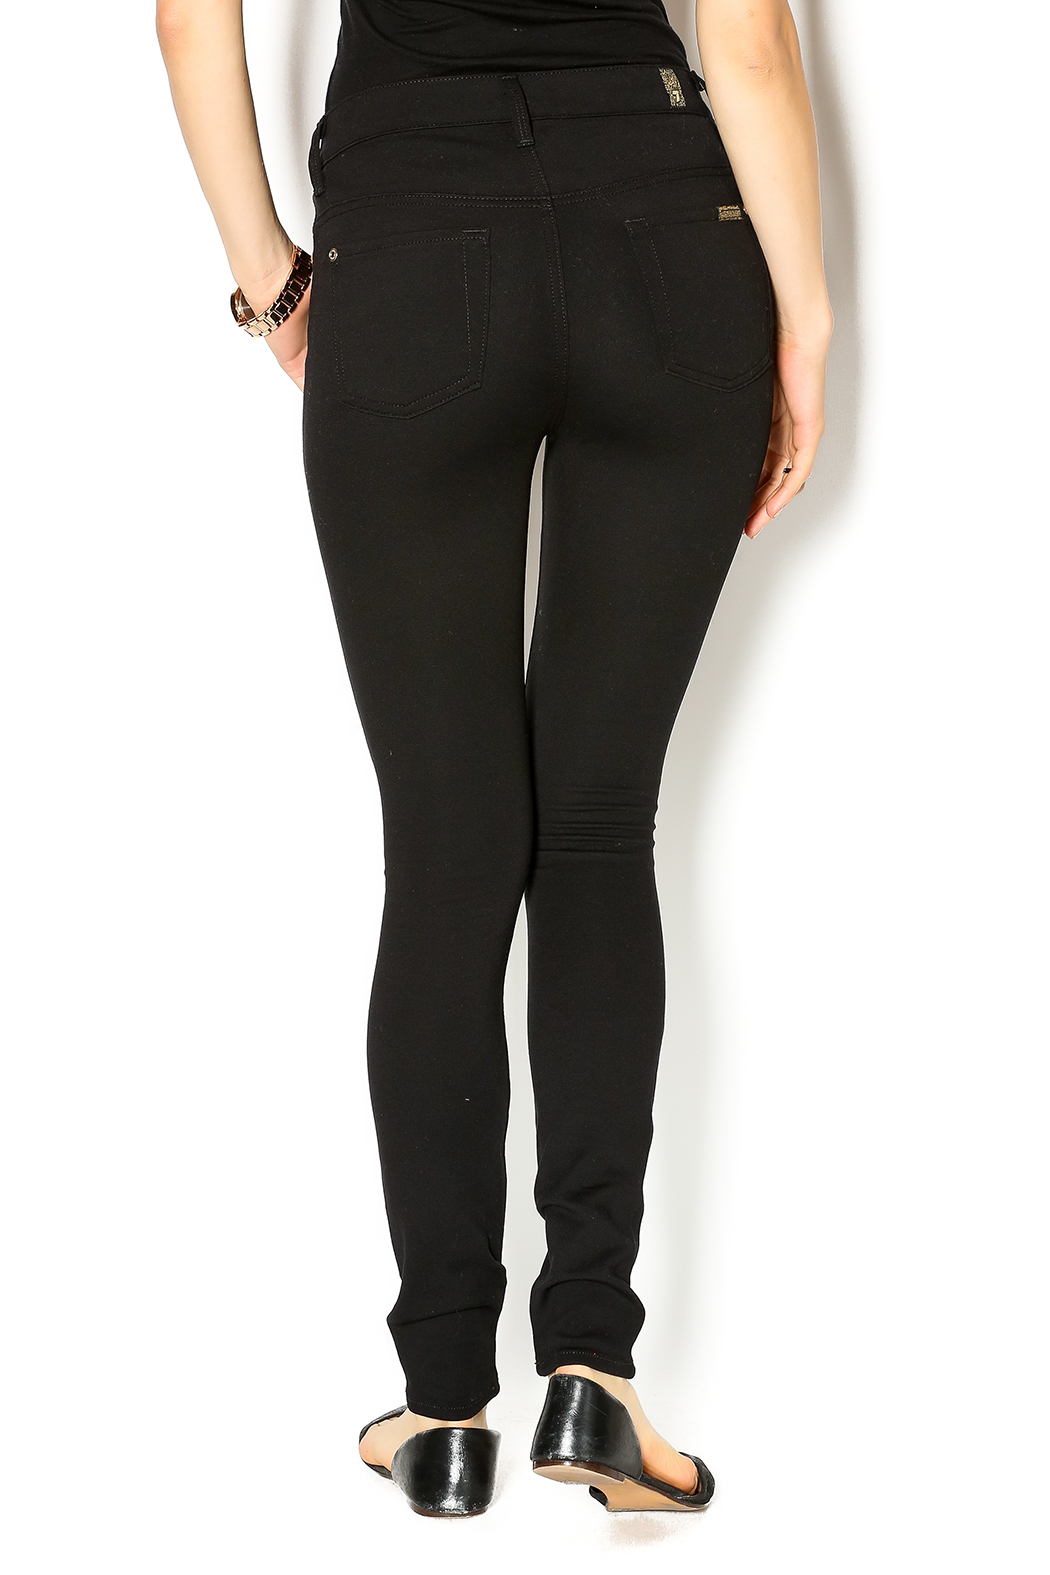 7 For all Mankind High Waist Skinnies - Back Cropped Image